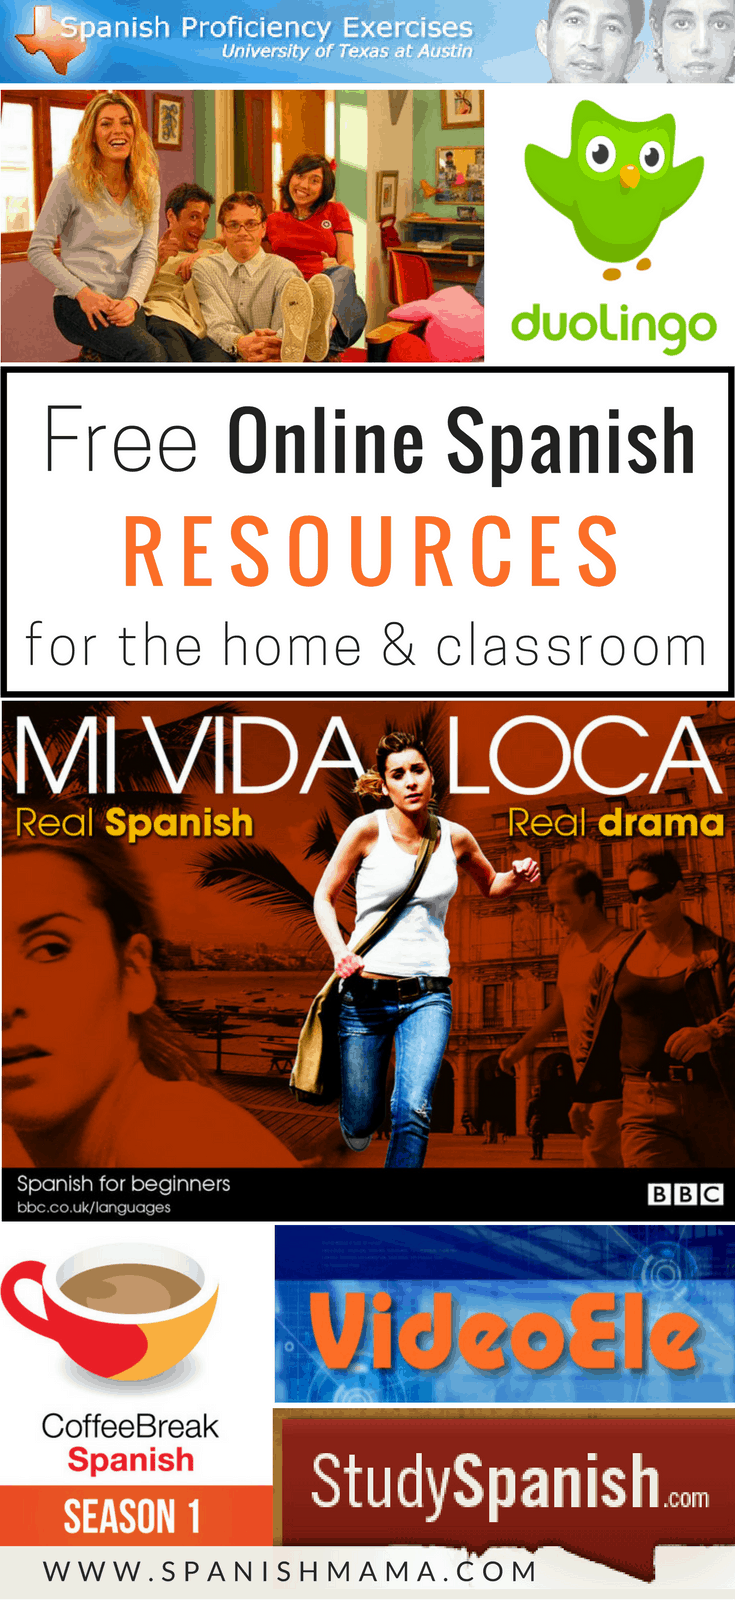 Teach Yourself Spanish for Free With These Online Resources